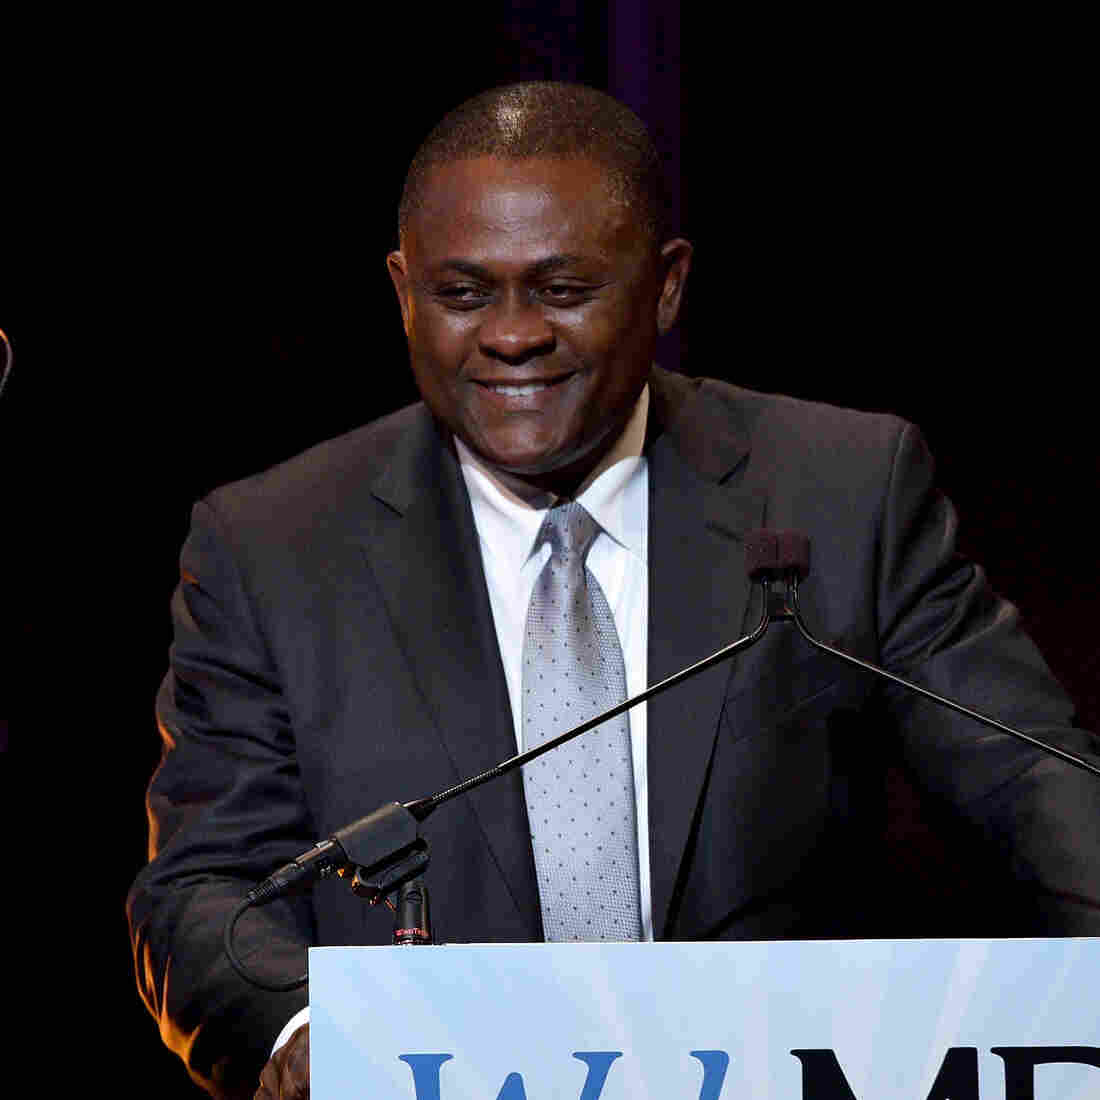 Dr. Bennet Omalu speaks on stage during the 2015 Health Hero Awards hosted by WebMD on Nov. 5 in New York City.